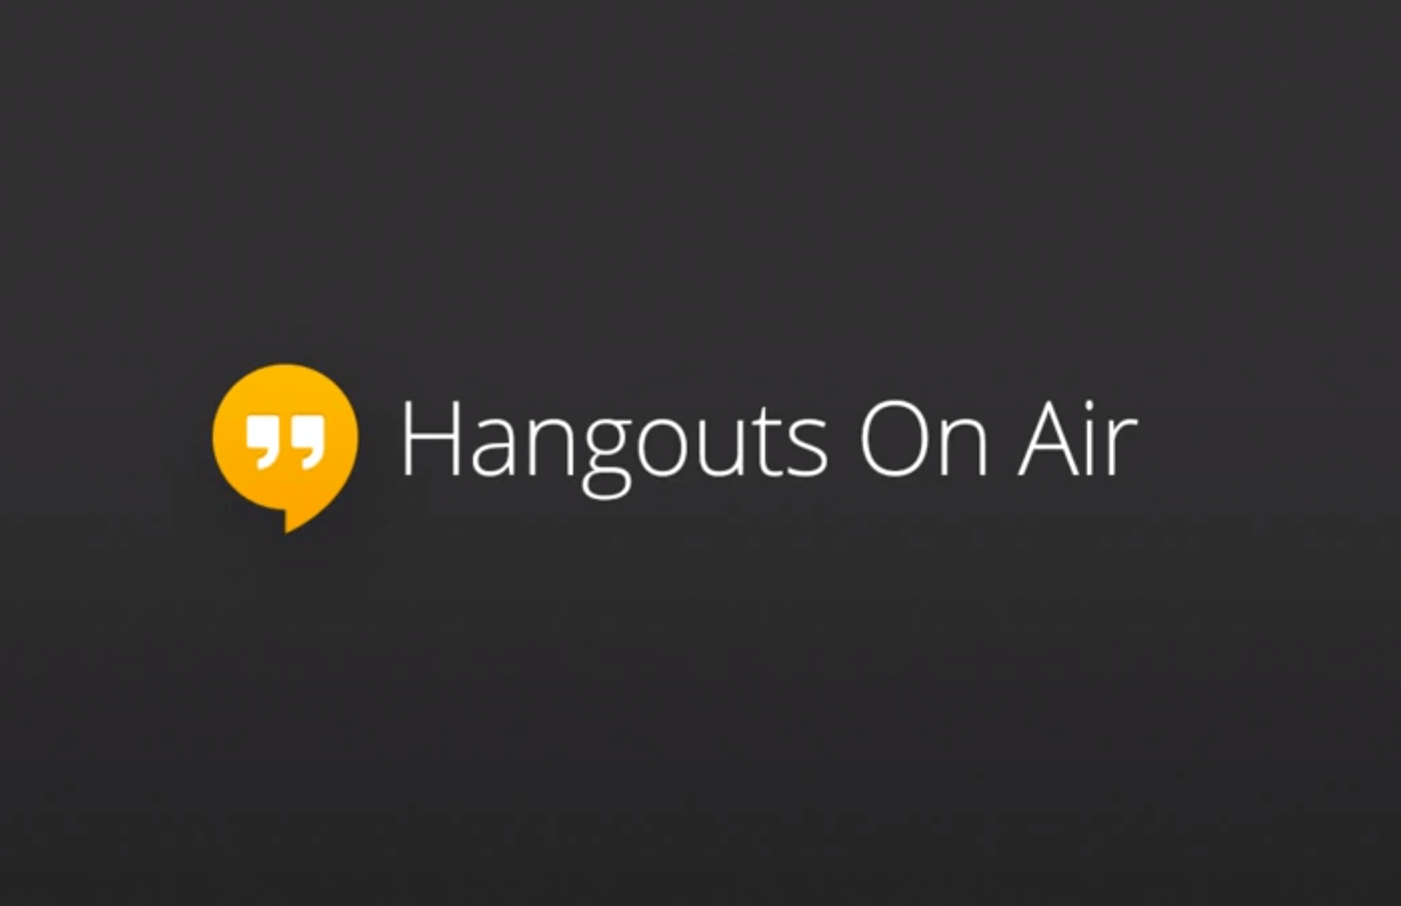 Google met fin à Hangouts on Air sur YouTube, sans avoir d'alternative